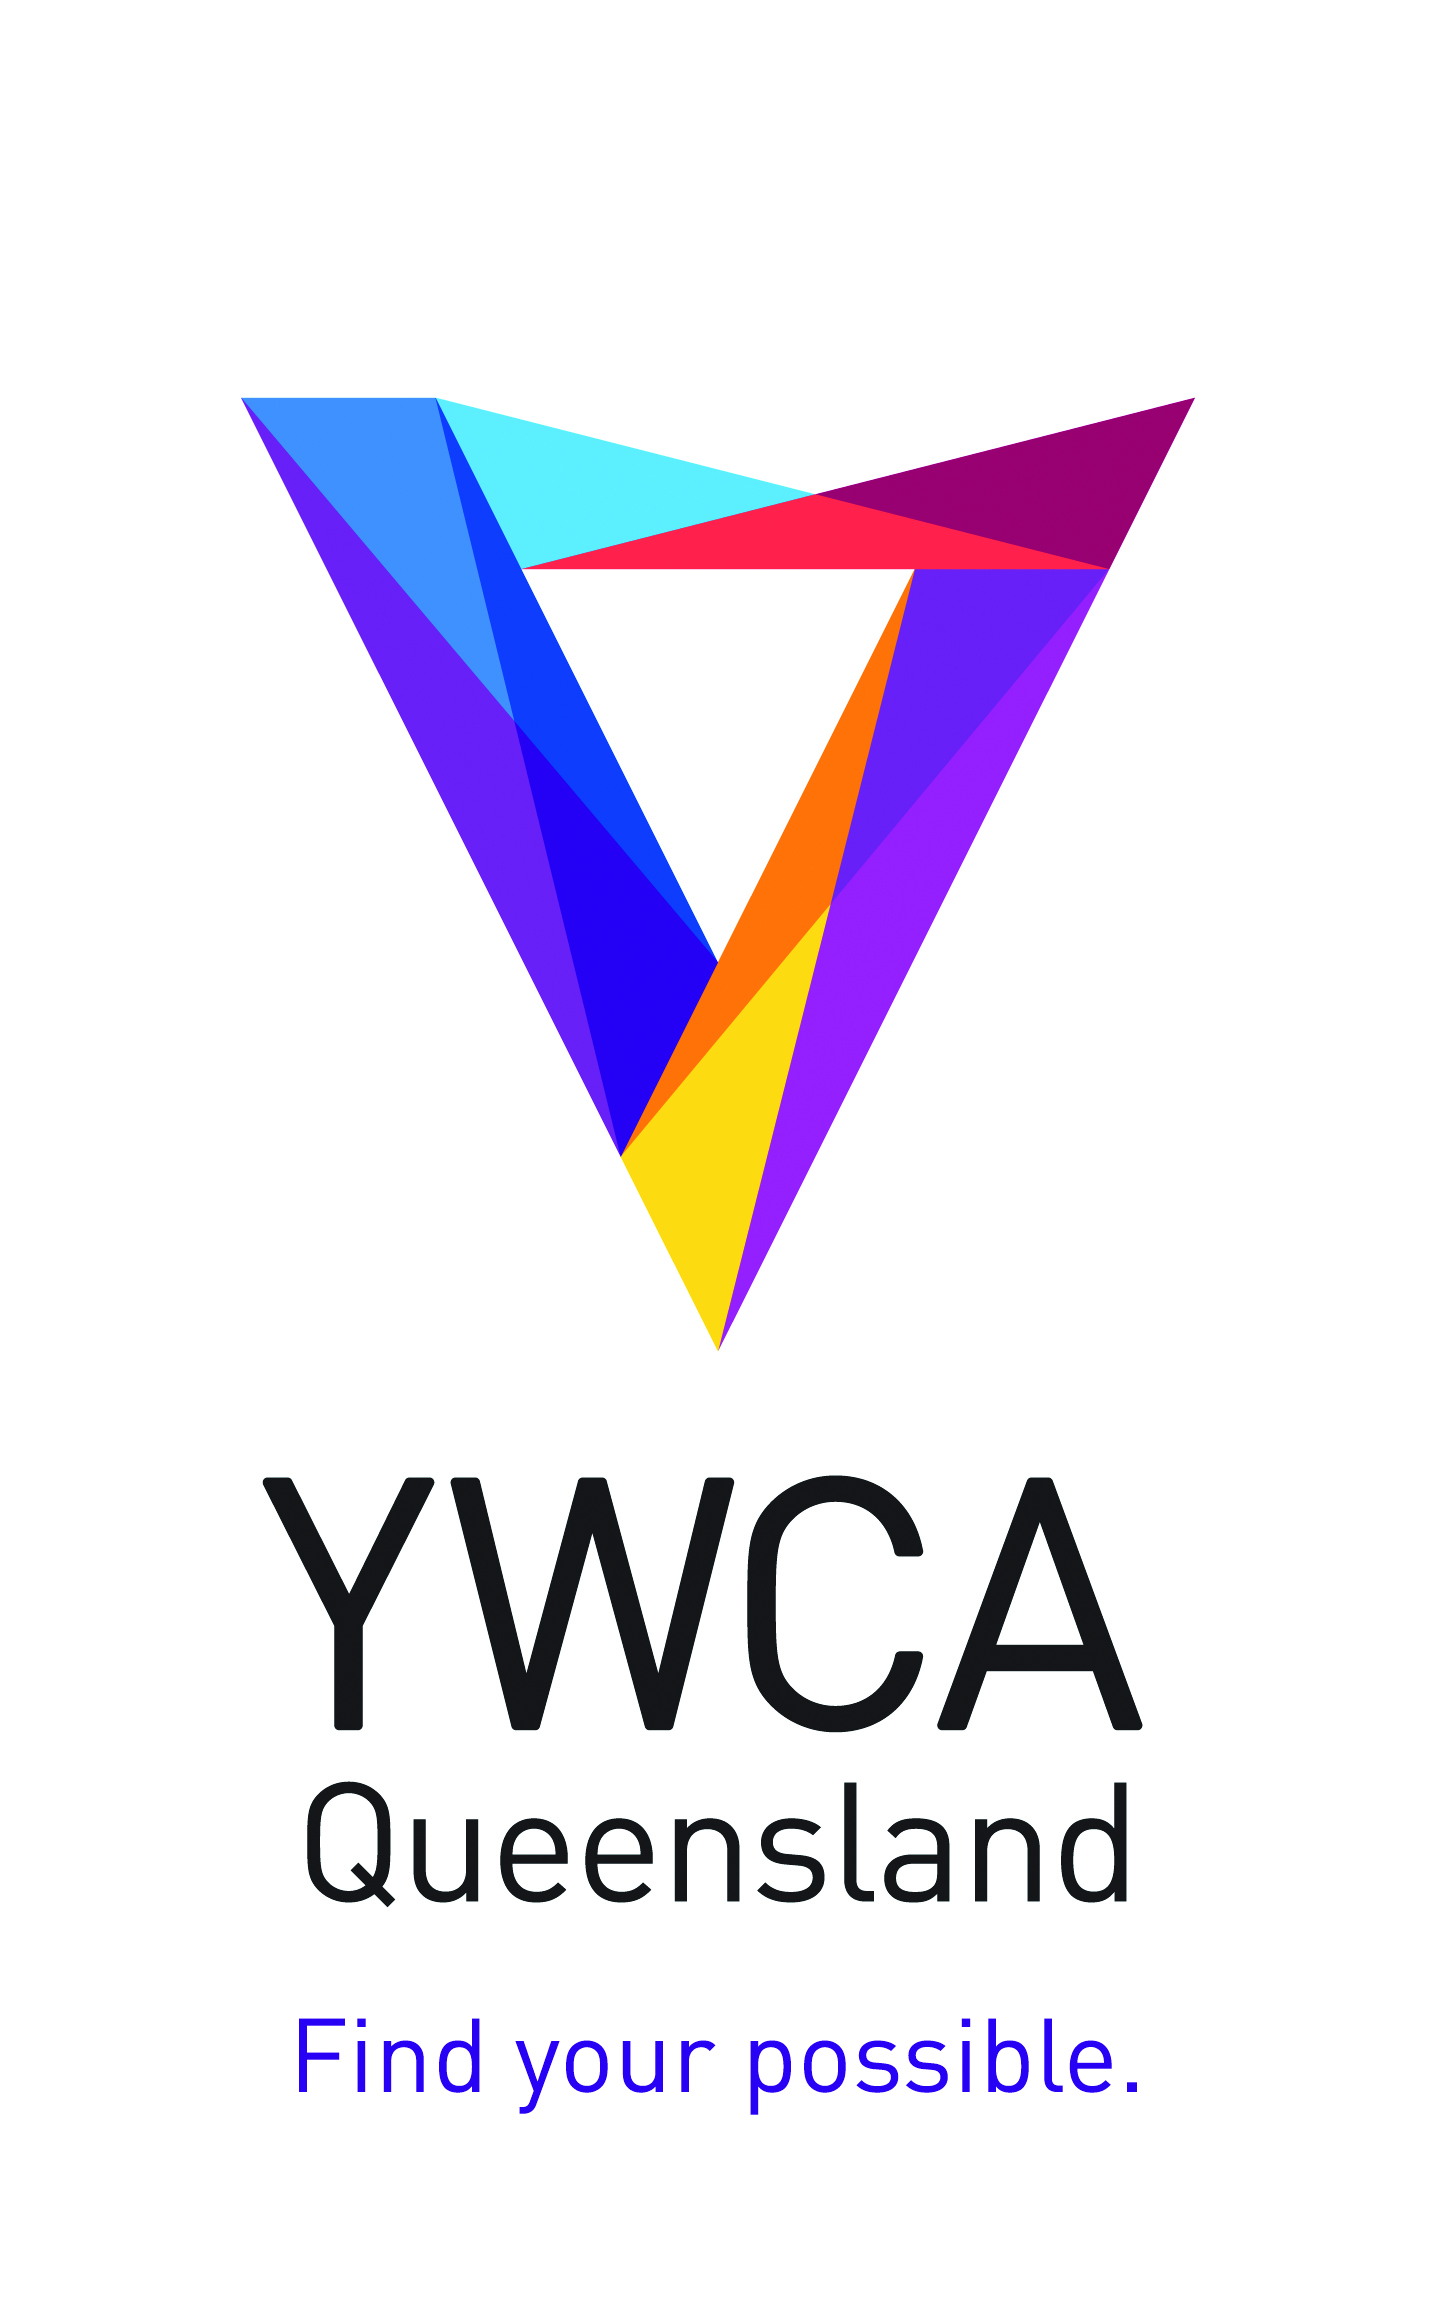 YWCA_Queensland_Tag_P_CMYK.jpg